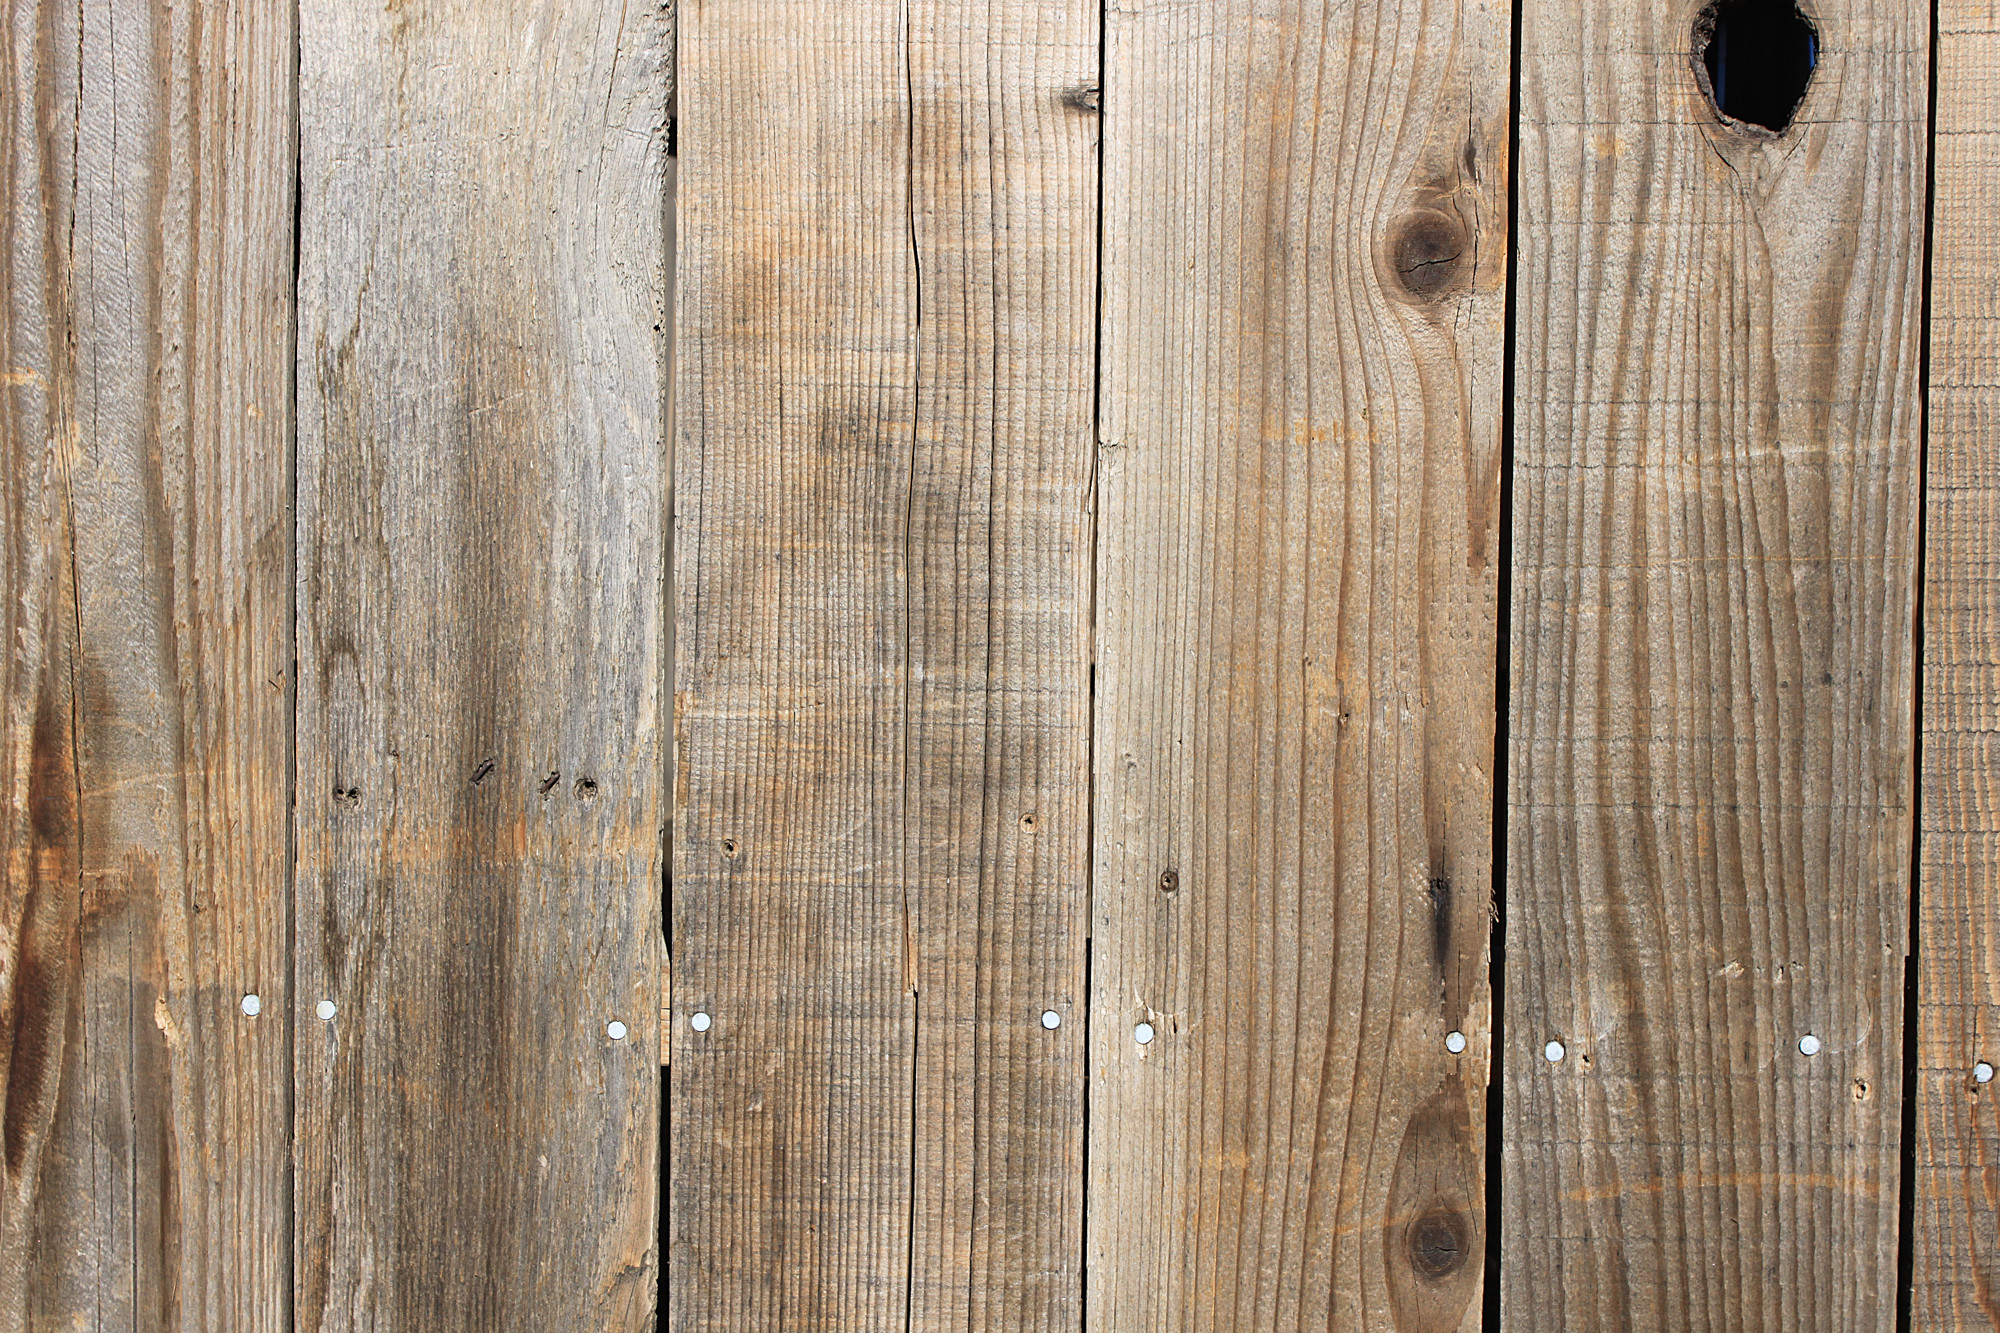 Old Barn Wood Wallpaper (41+ images)